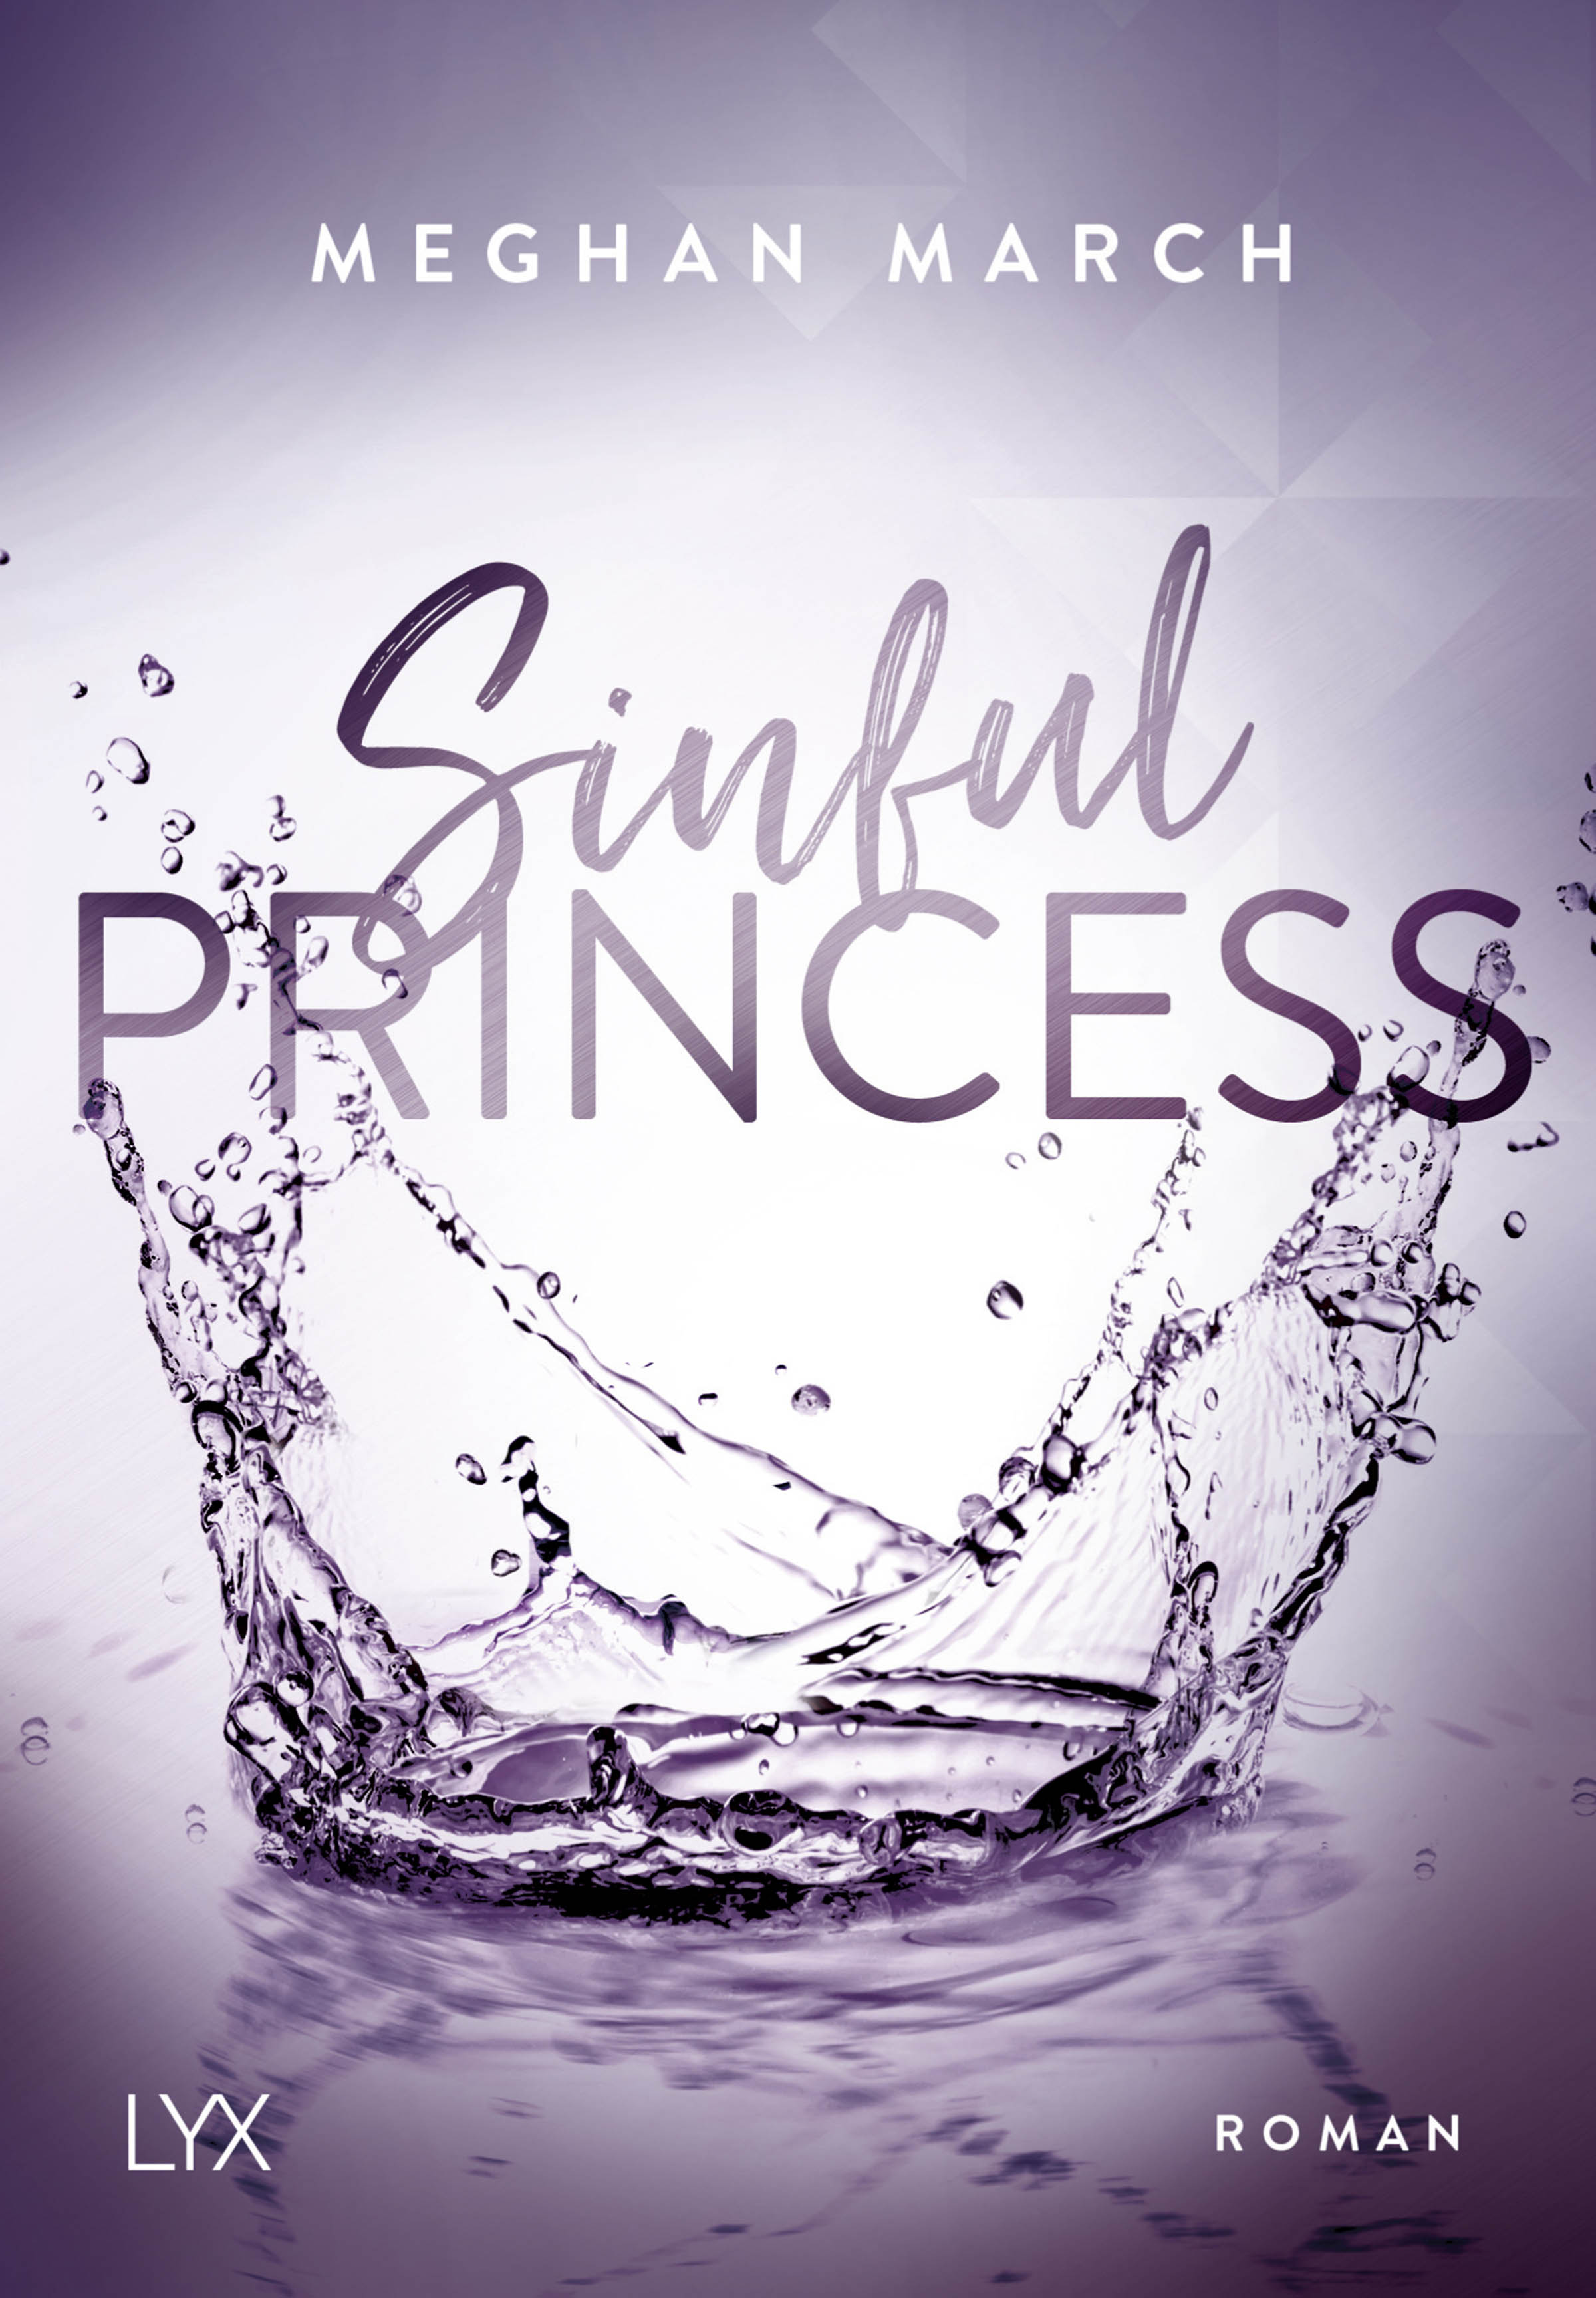 Meghan March - Sinful Princess - Cover